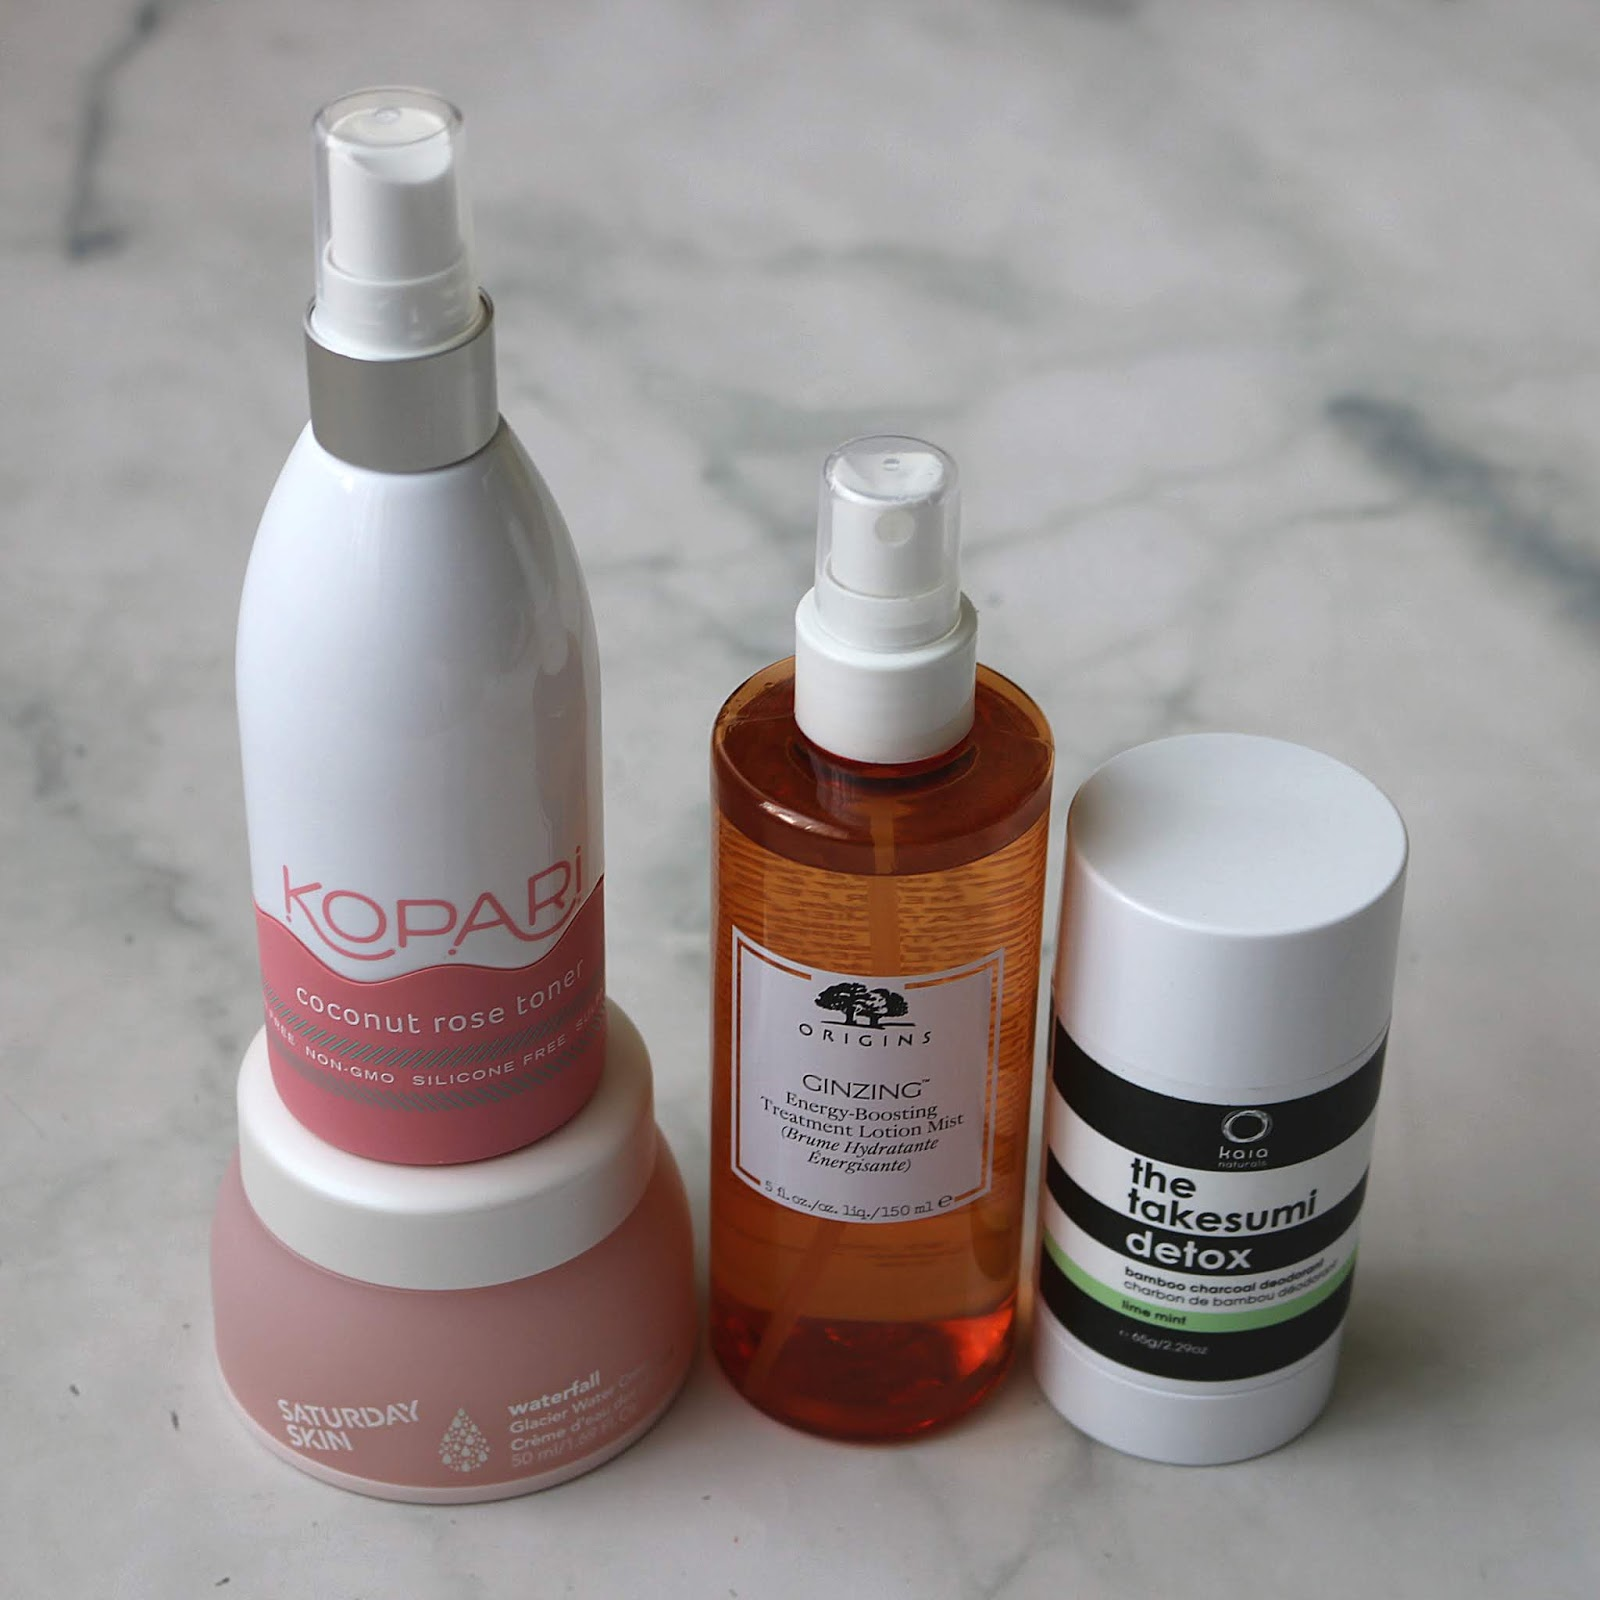 Sephora Hudson's Bay Clean Beauty Haul